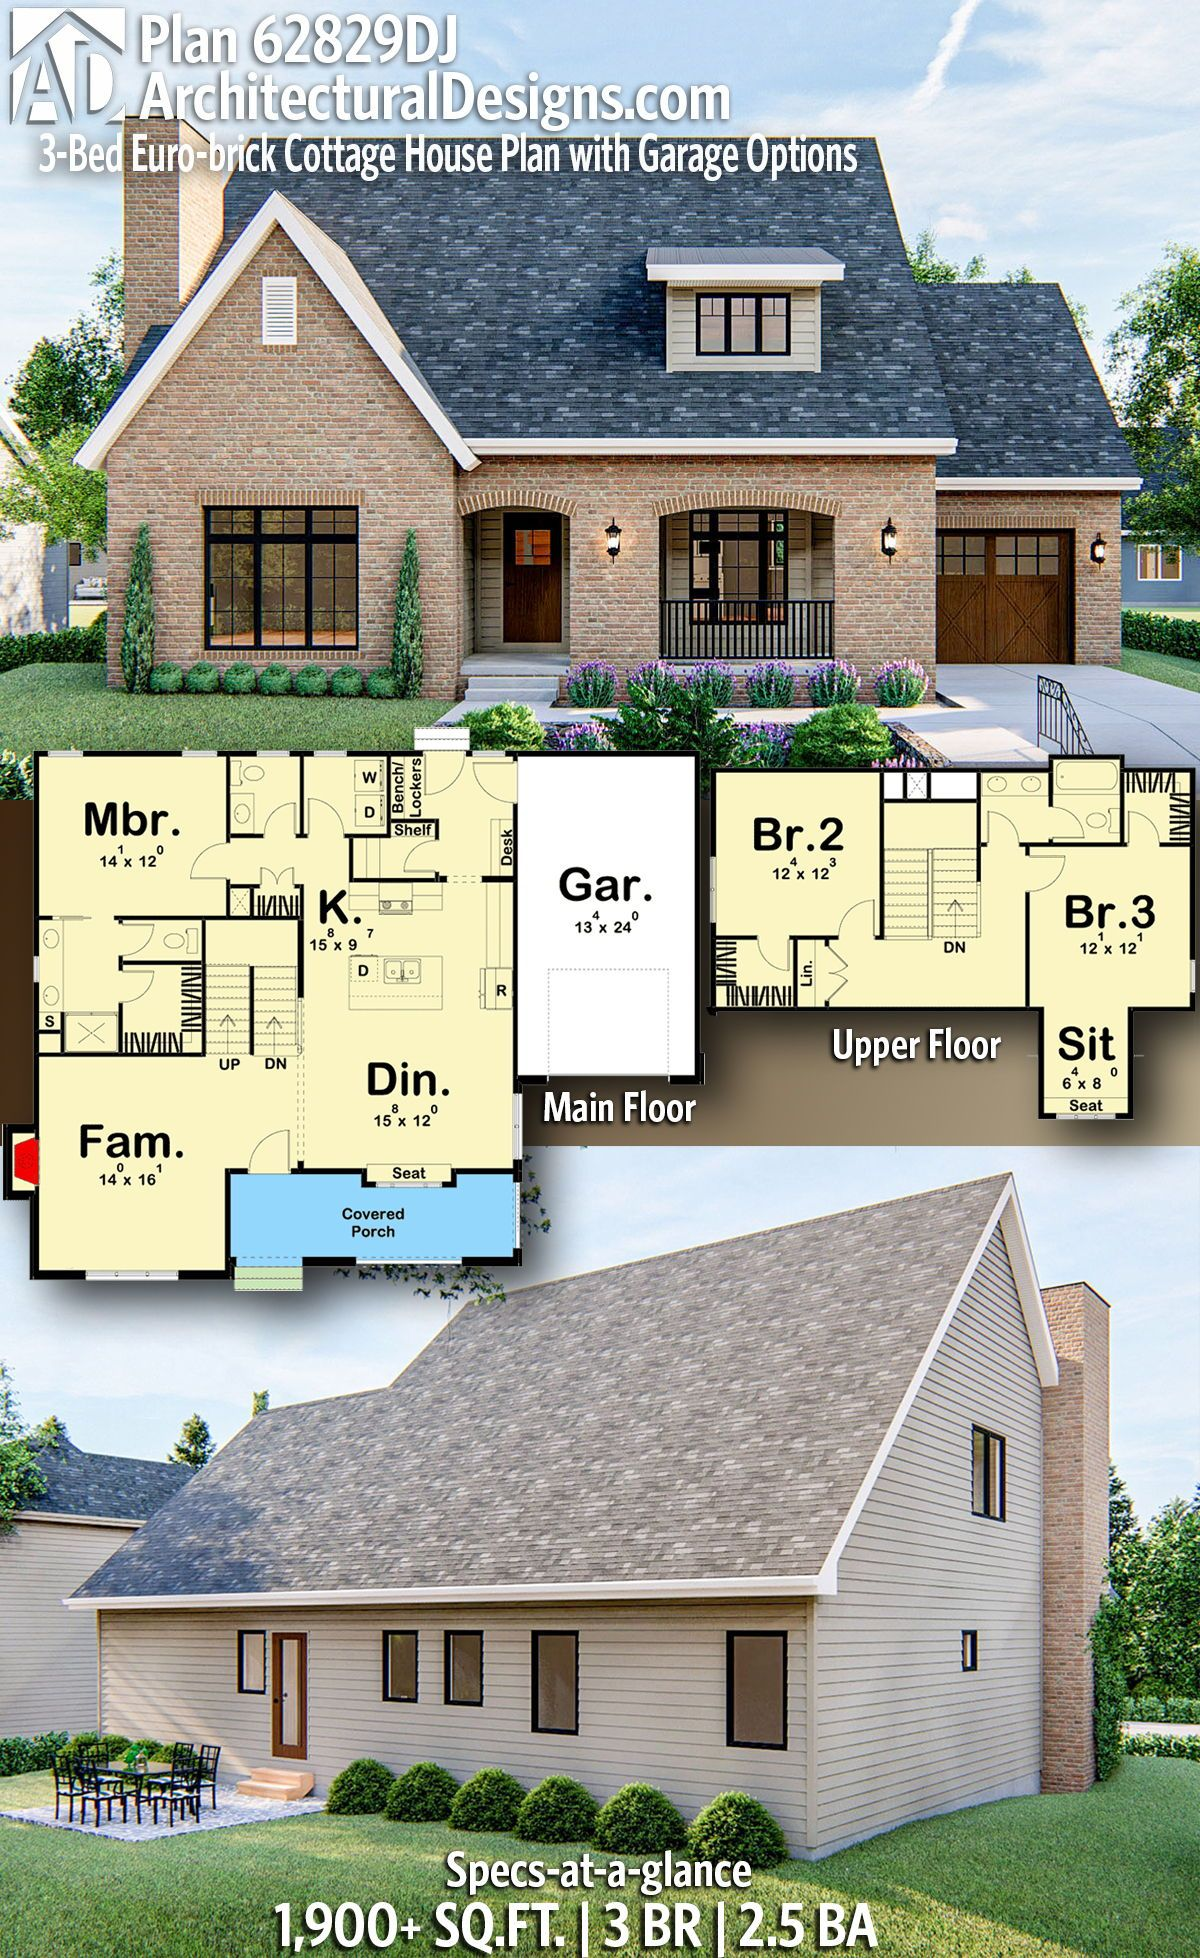 Plan 62829dj 3 Bed Euro Brick Cottage House Plan With Garage Options Brick Cottage Cottage House Plans House Plans